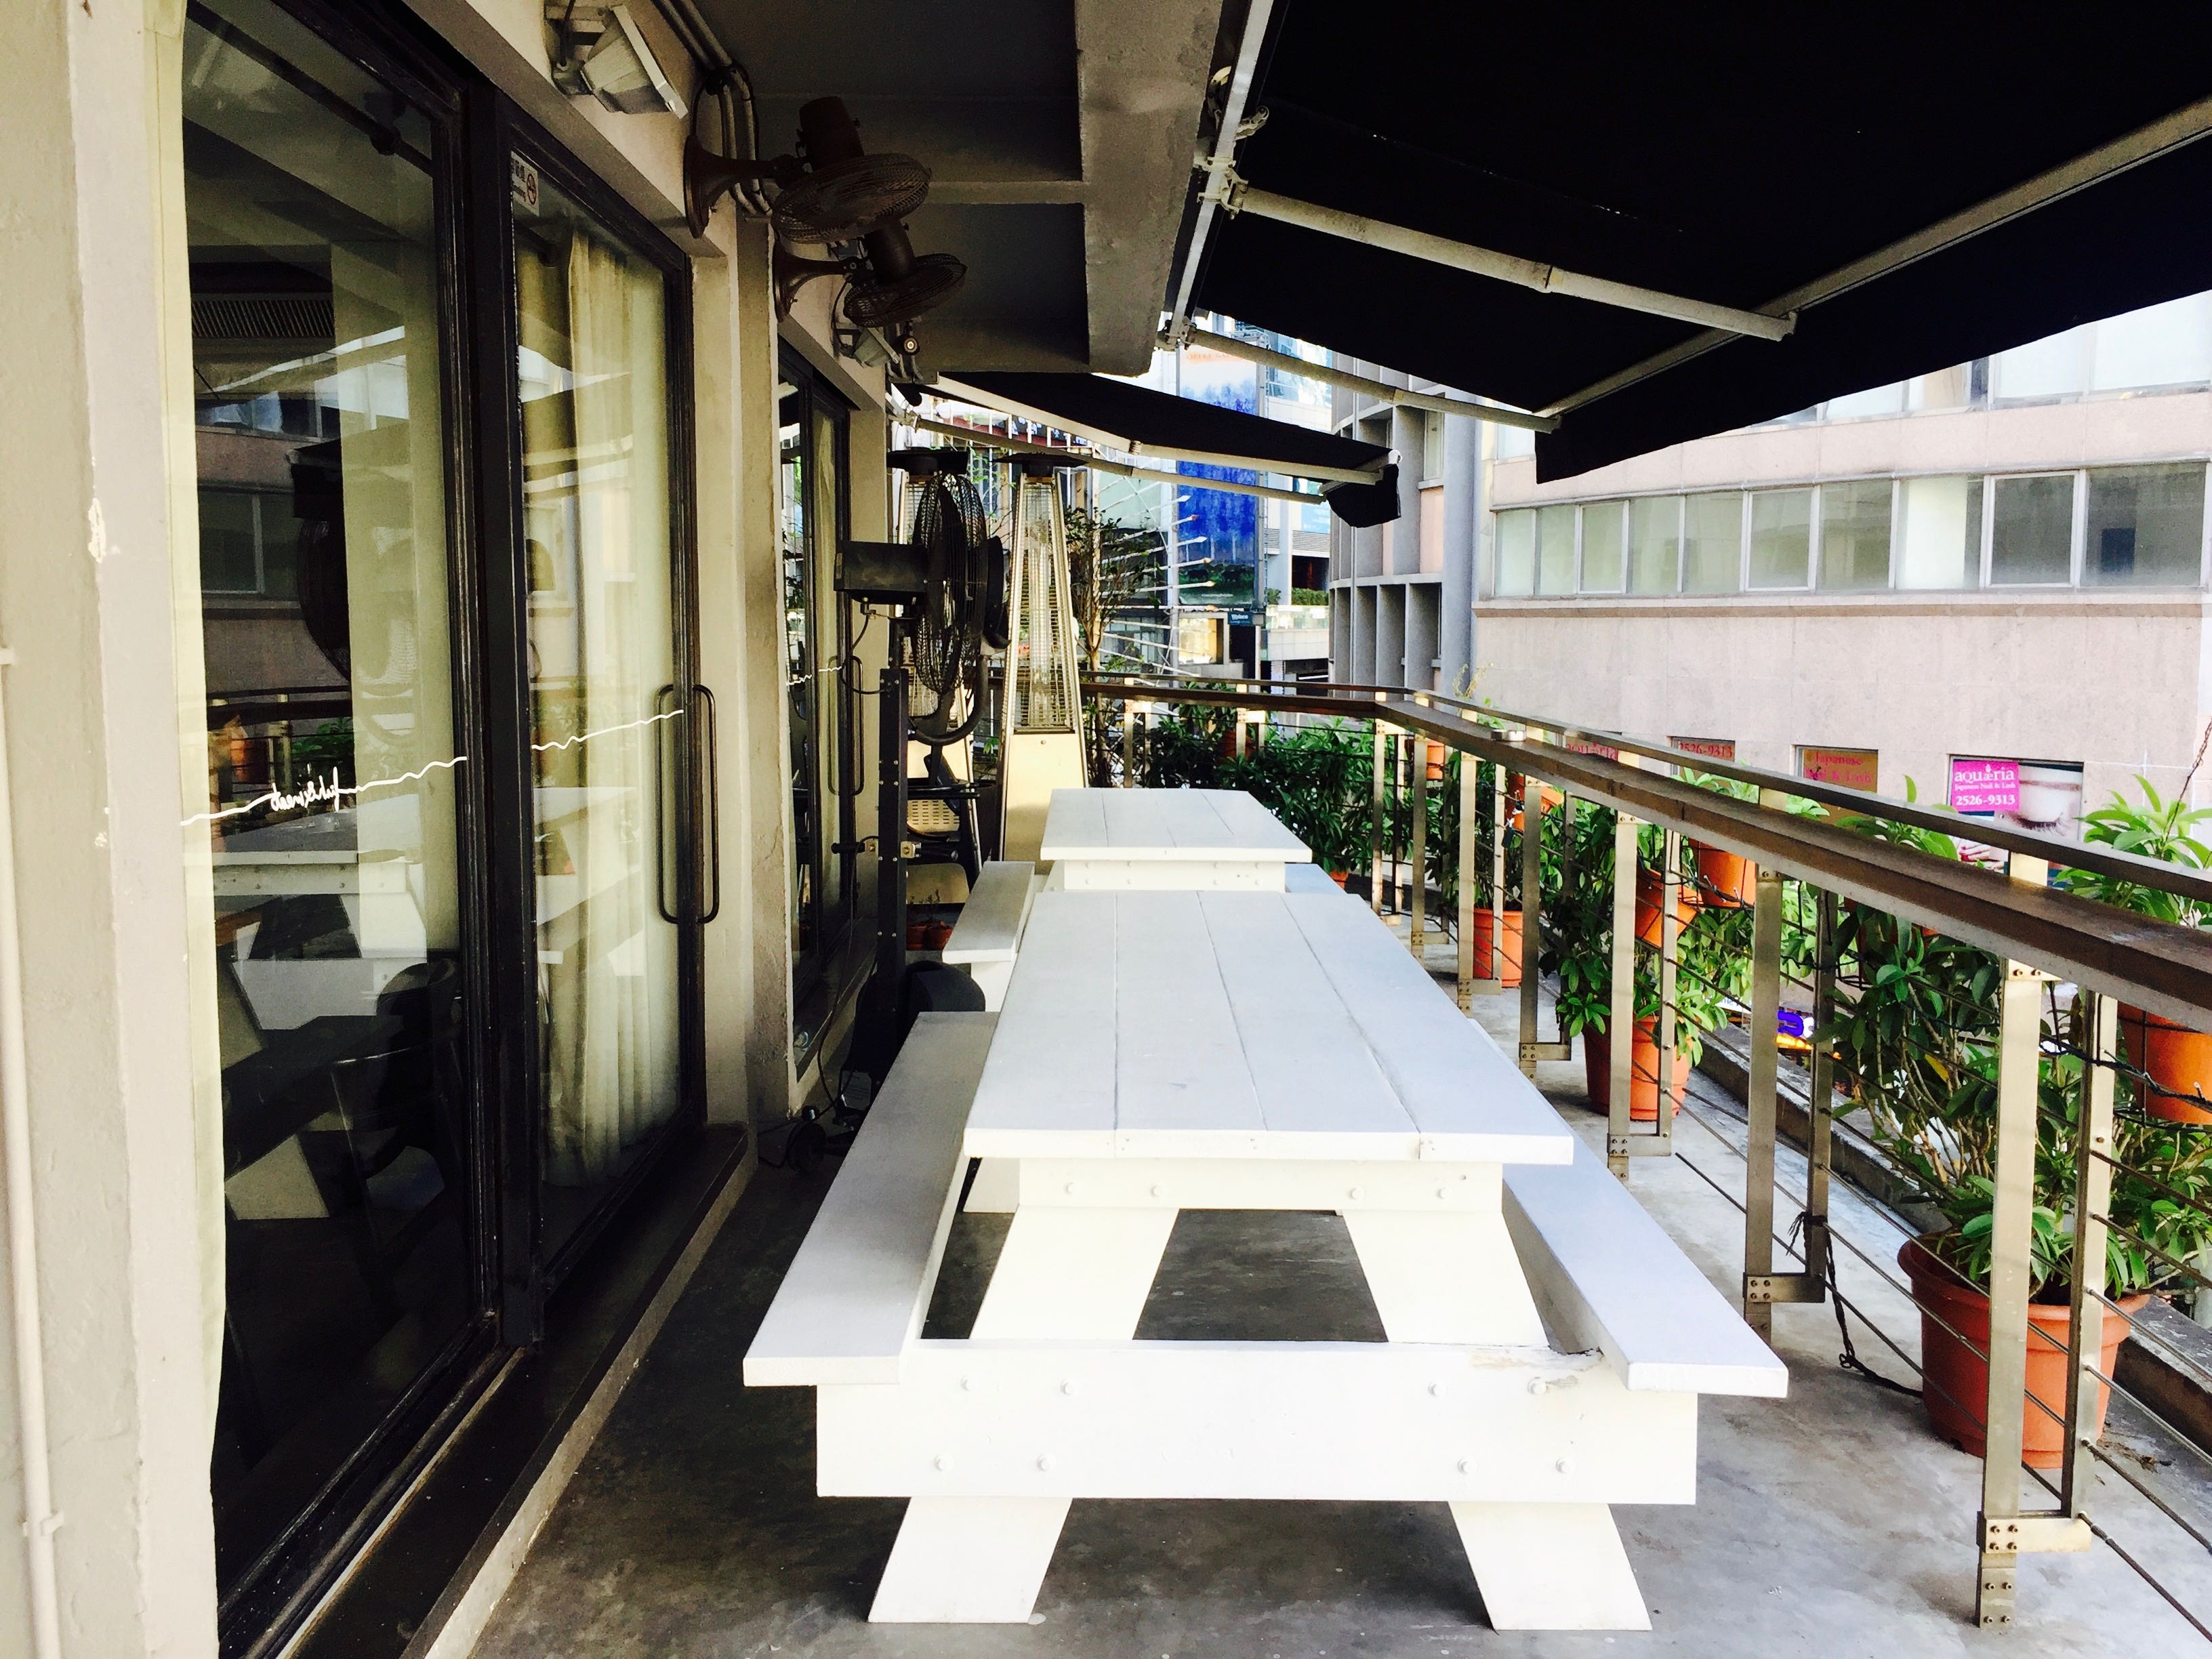 HK Central restaurant for lease with spacious terrace